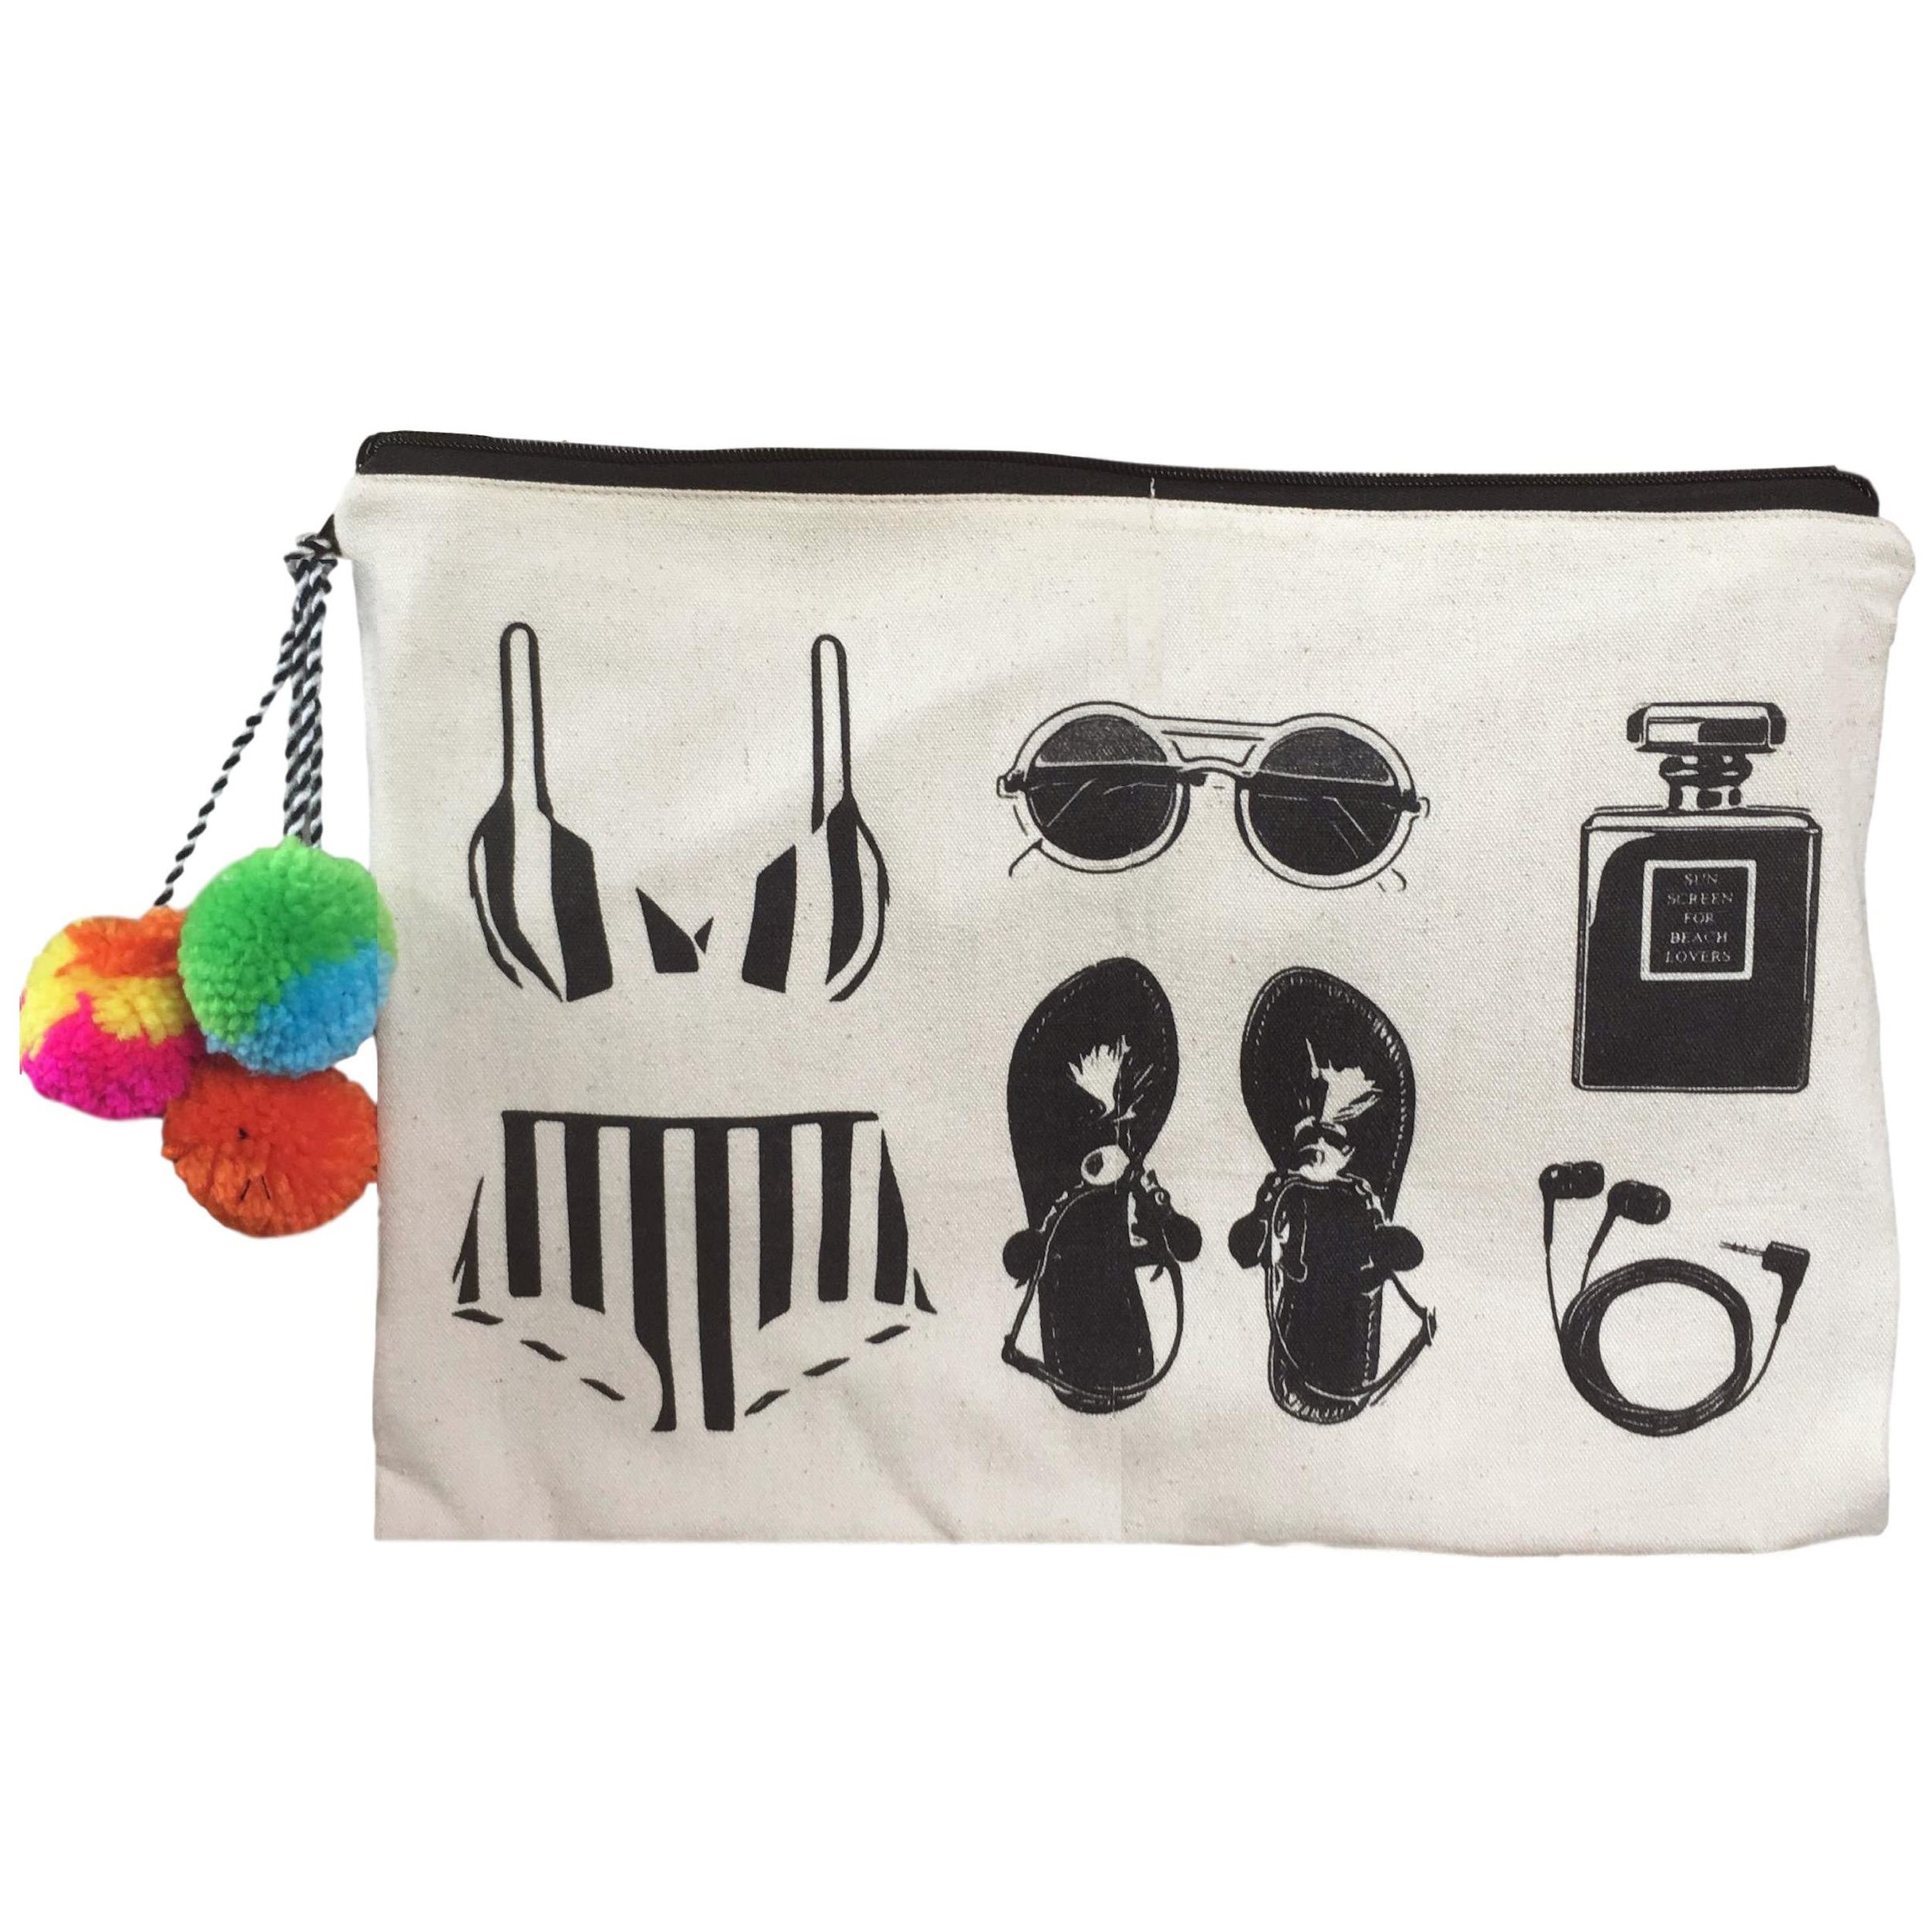 Beach Pouch Bag-all.jpg